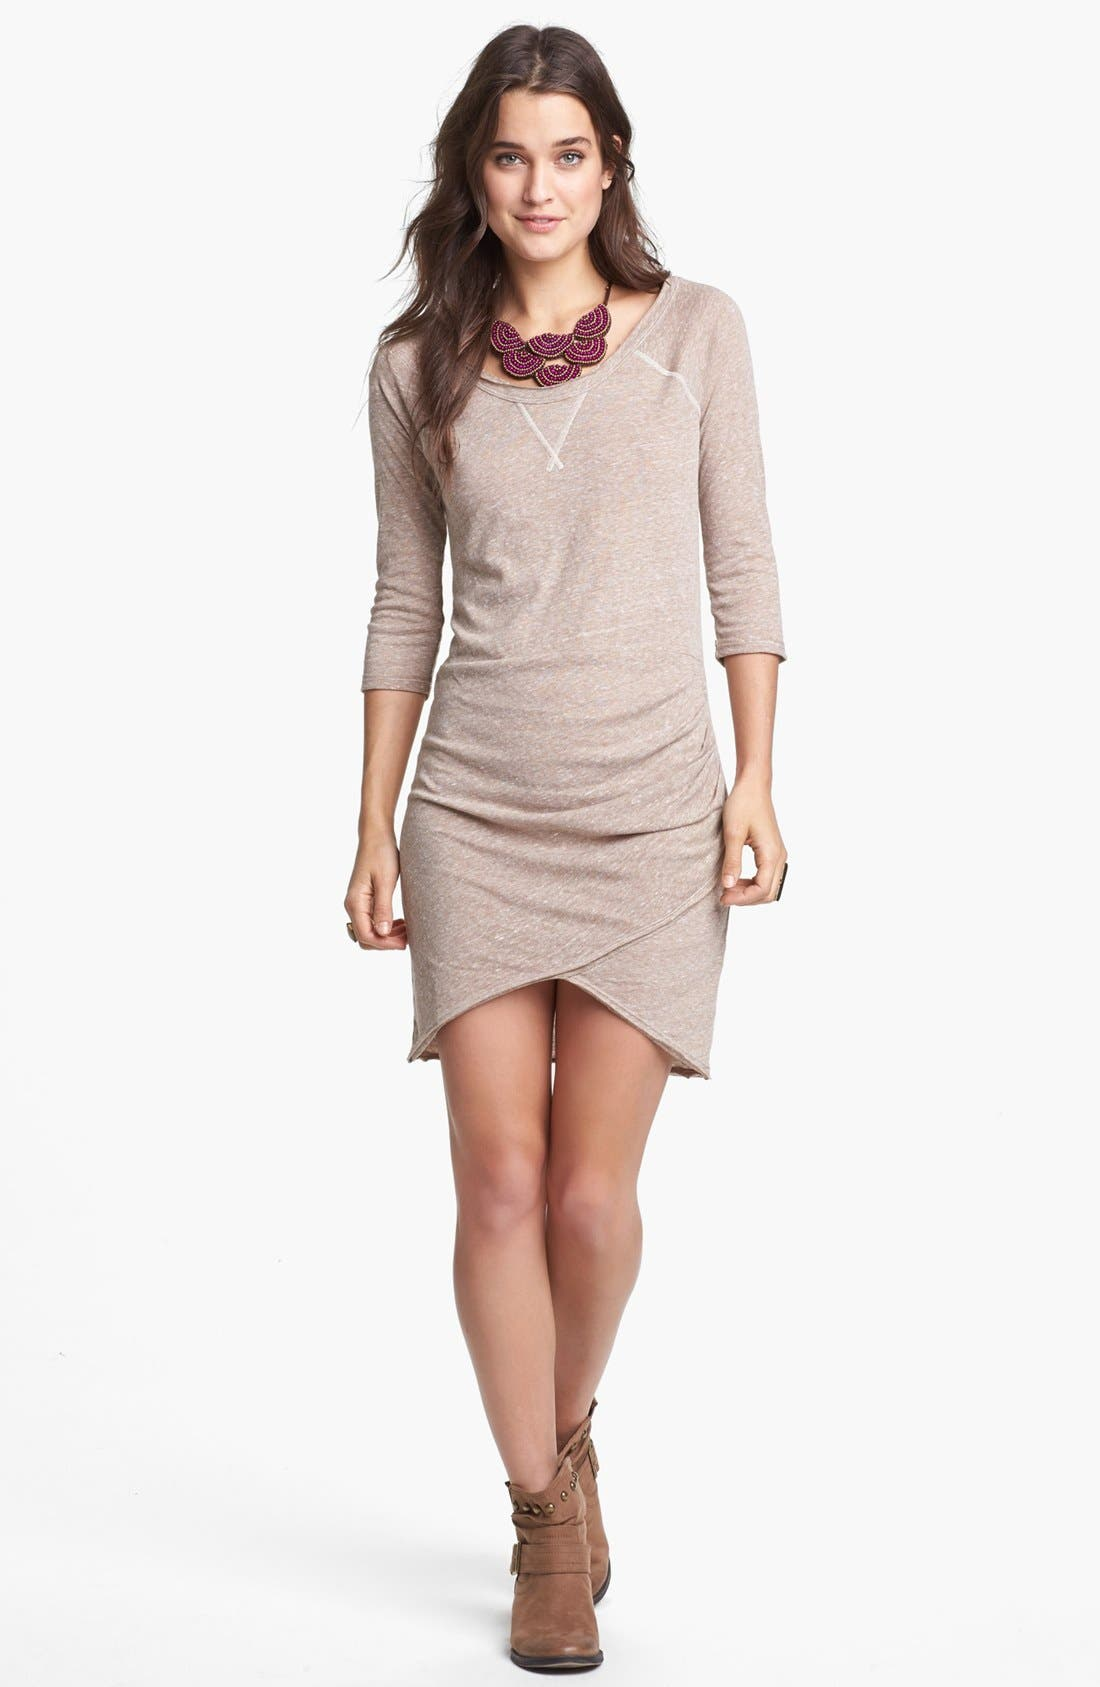 Alternate Image 1 Selected - Free People 'FP Beach - The James' Knit Dress